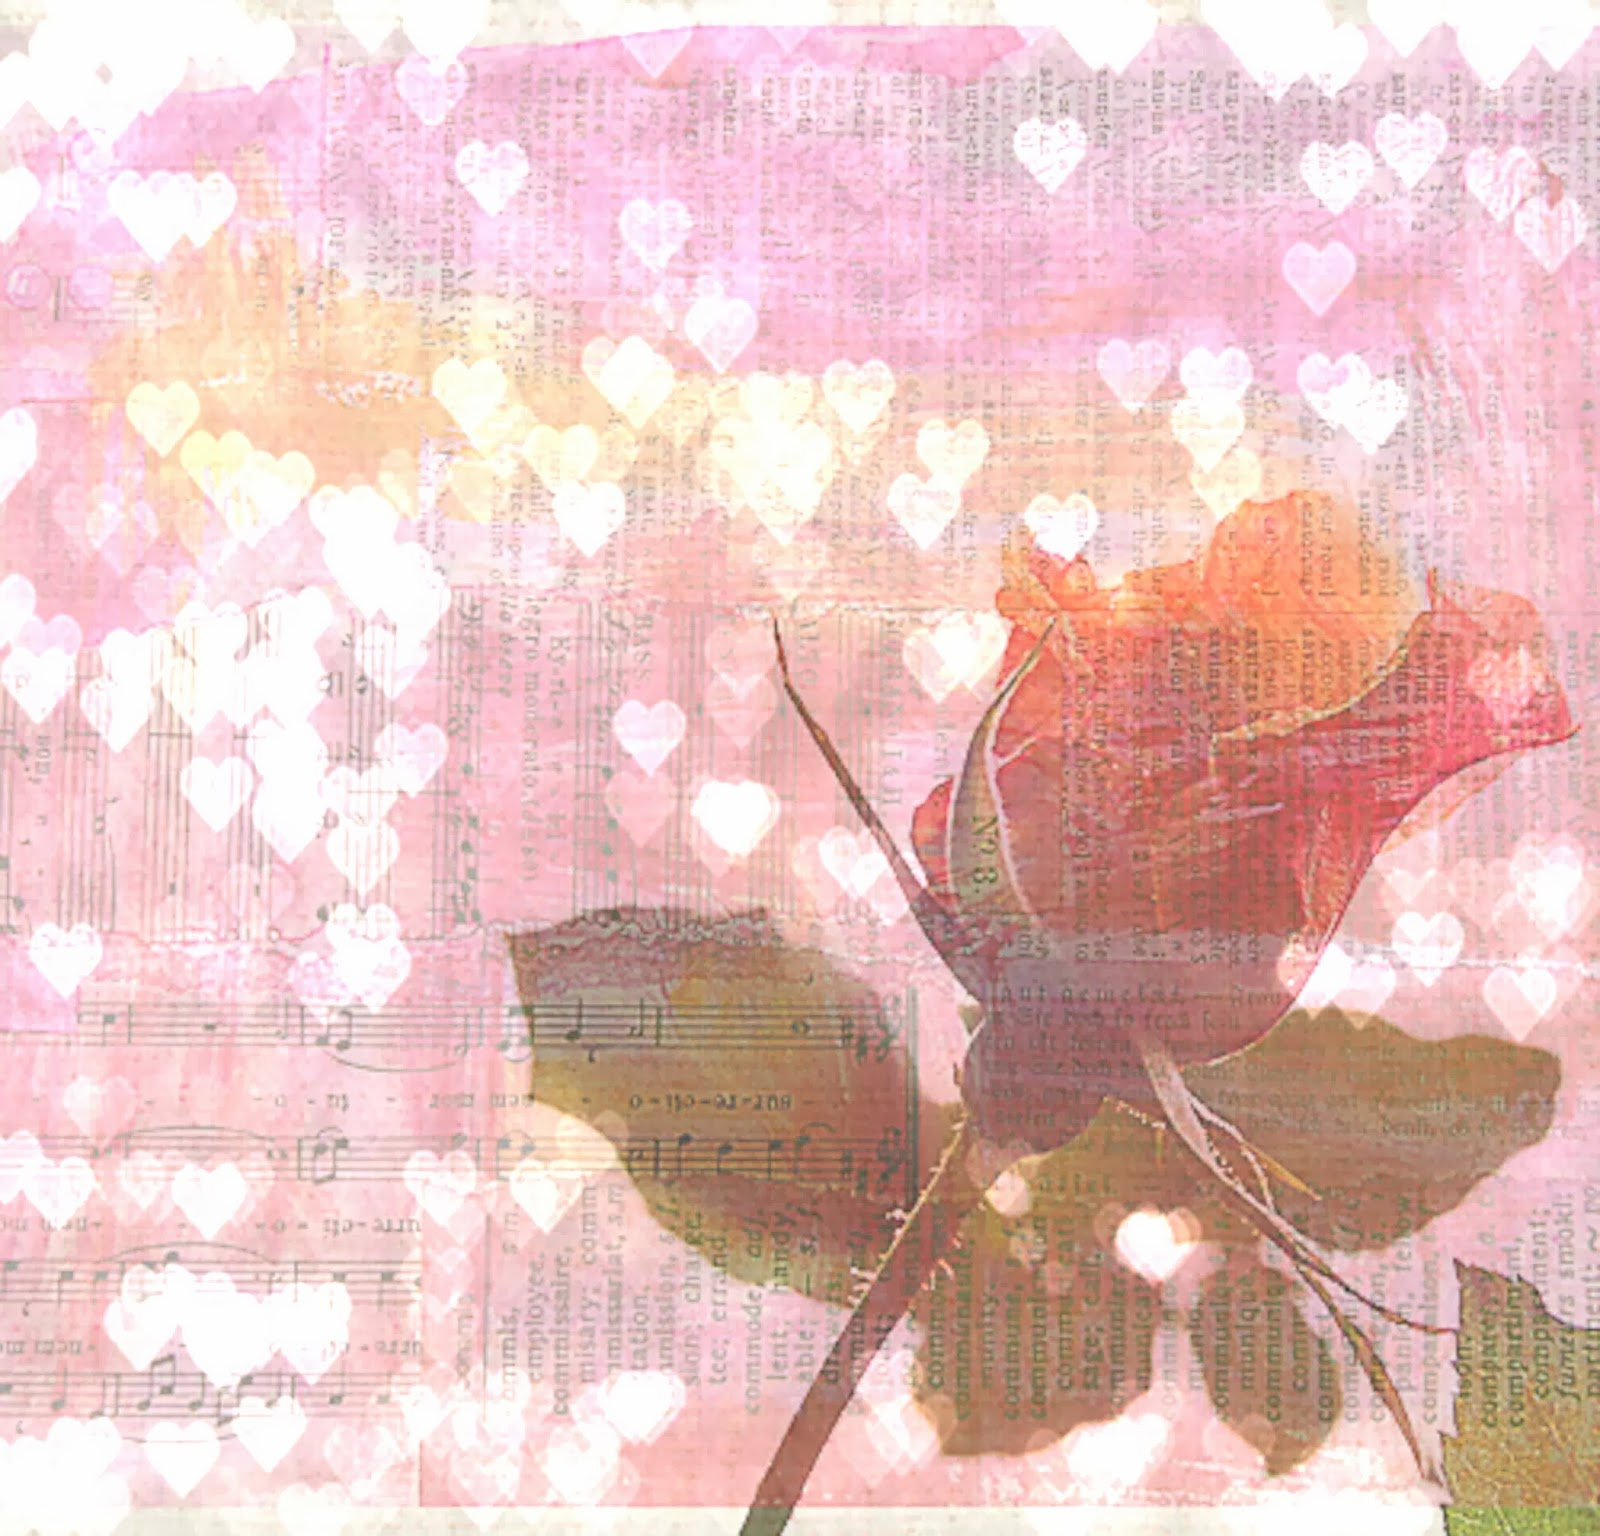 https://www.etsy.com/listing/175537801/love-flower-photograph-vintage-pink?ref=listing-shop-header-4